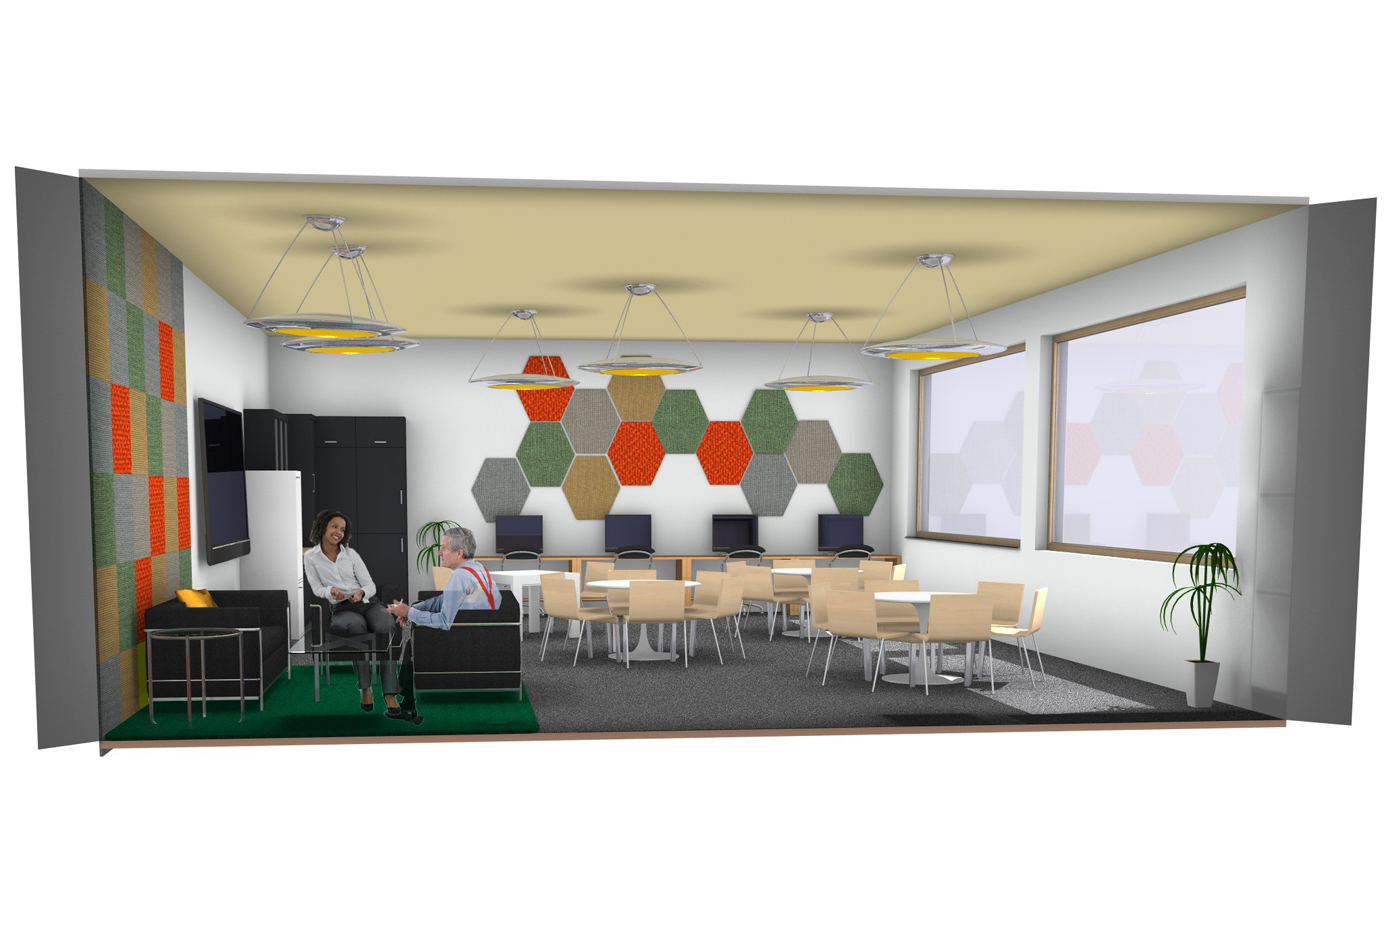 Redesigning Special Educational Needs Schools focusing on User Well Being (Staff Room)